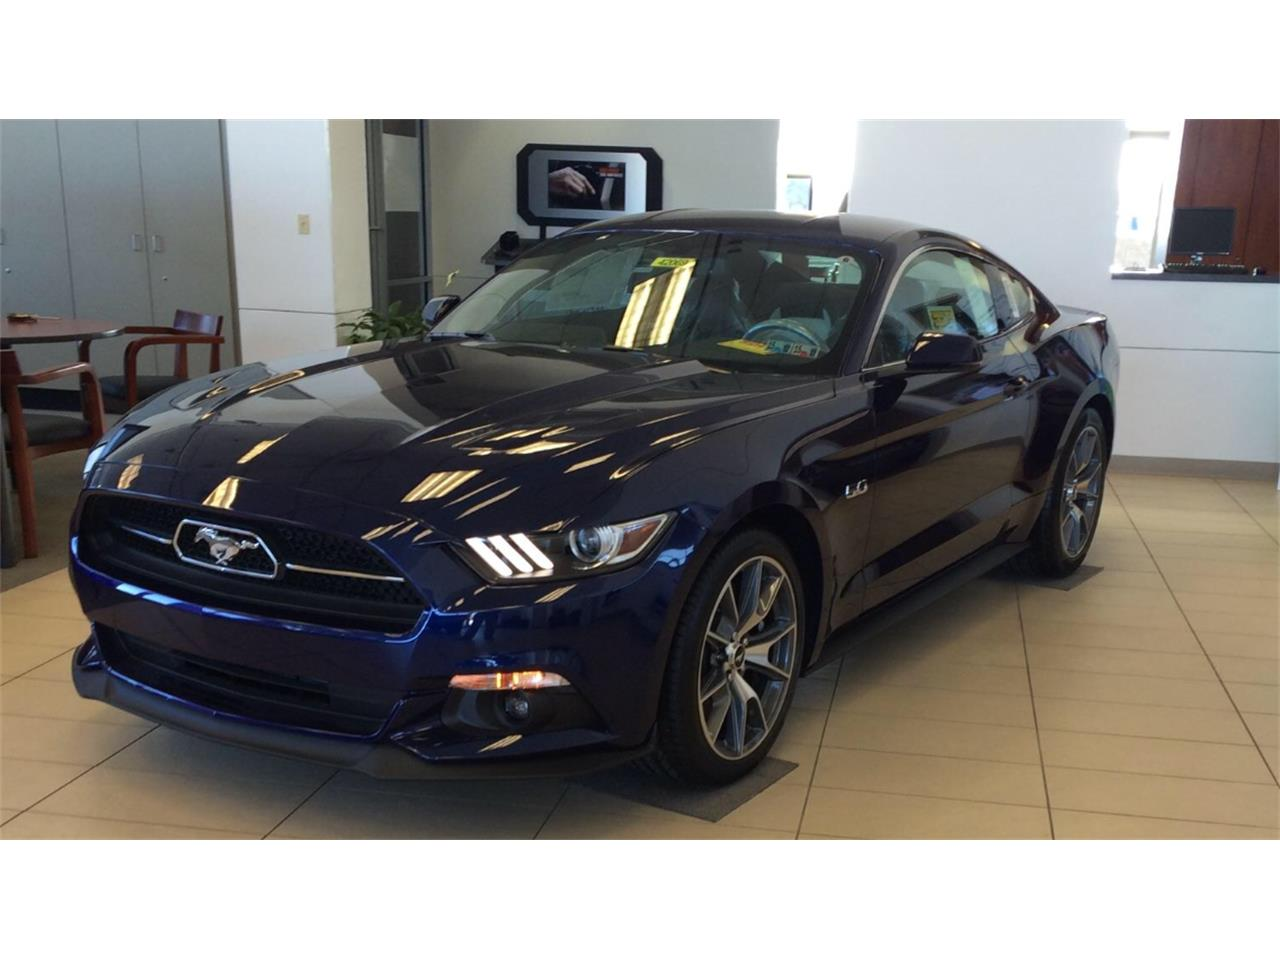 2015 Ford Mustang GT (CC-1390638) for sale in Chalfont, Pennsylvania